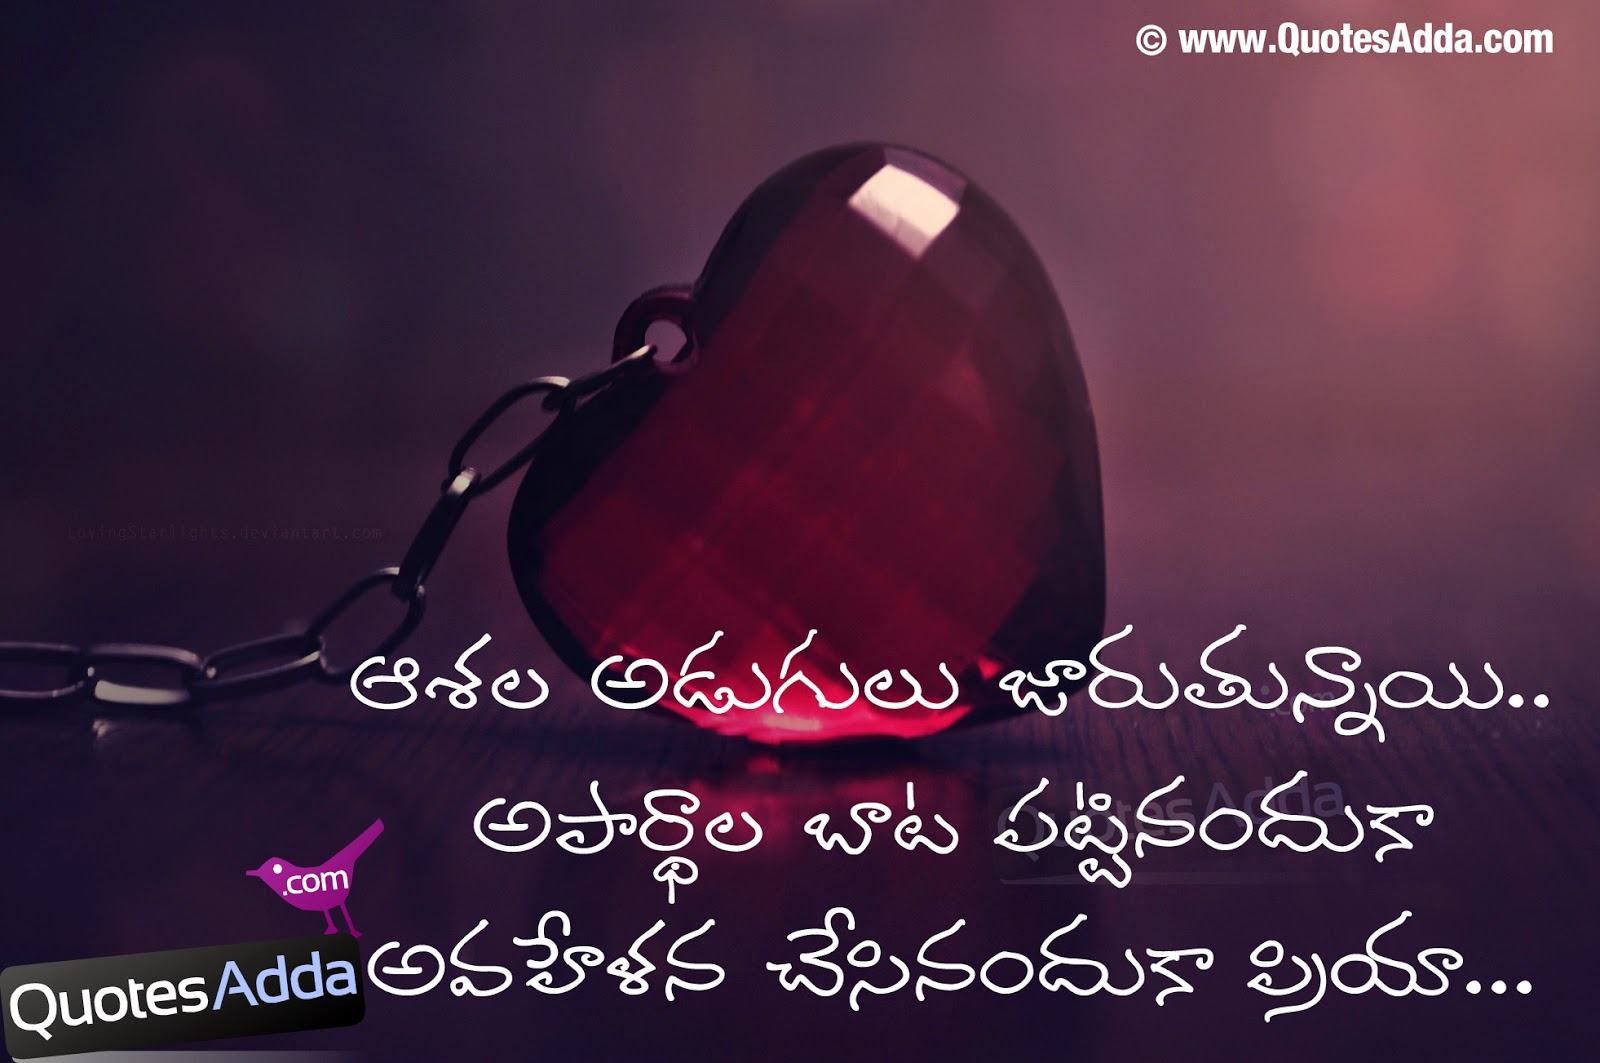 telugu love quotes happy holi telugu quotations wallpapers telugu